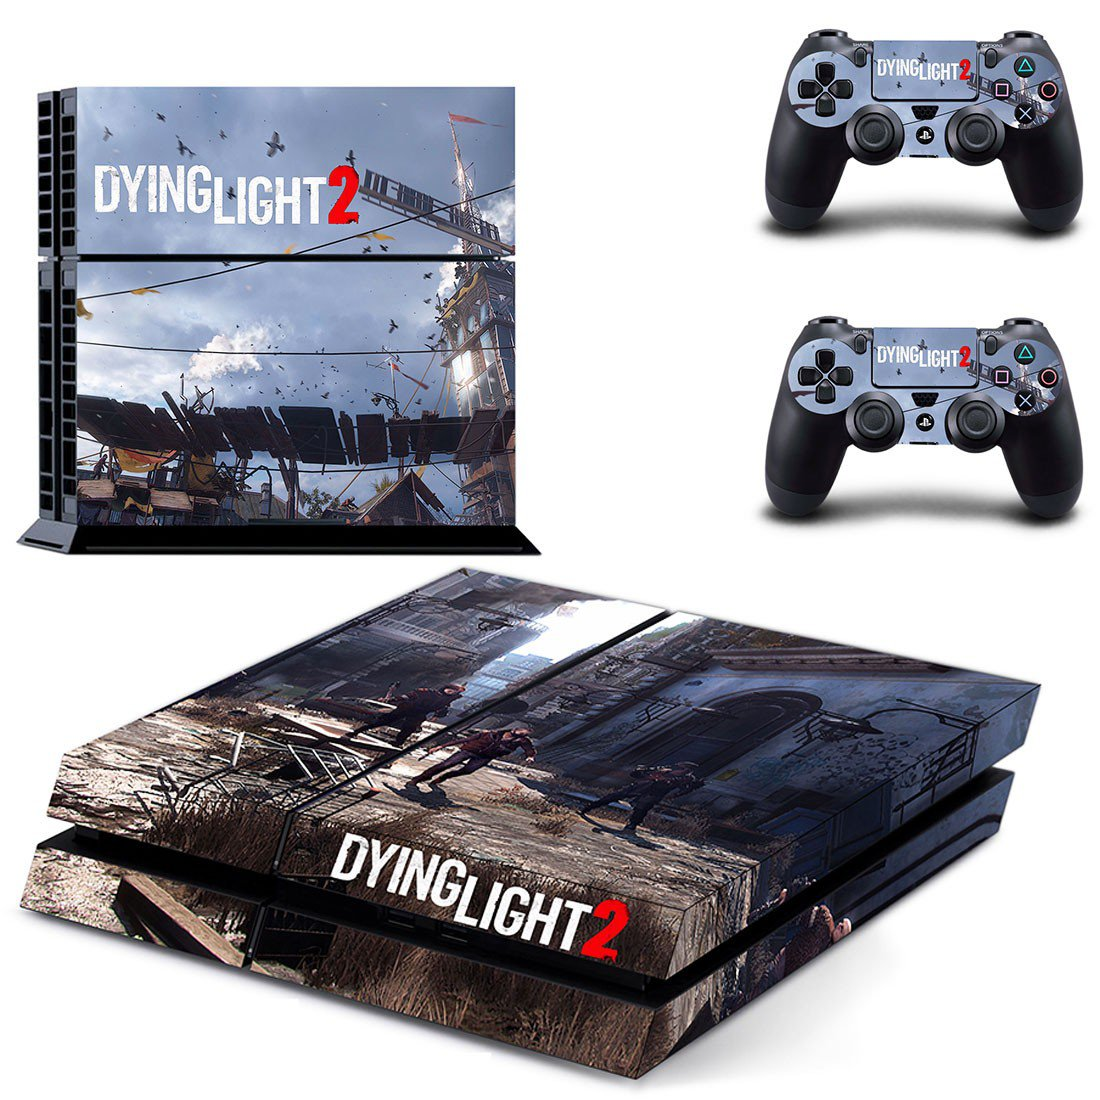 Dying Light 2 decal skin sticker for PS4 console and controllers